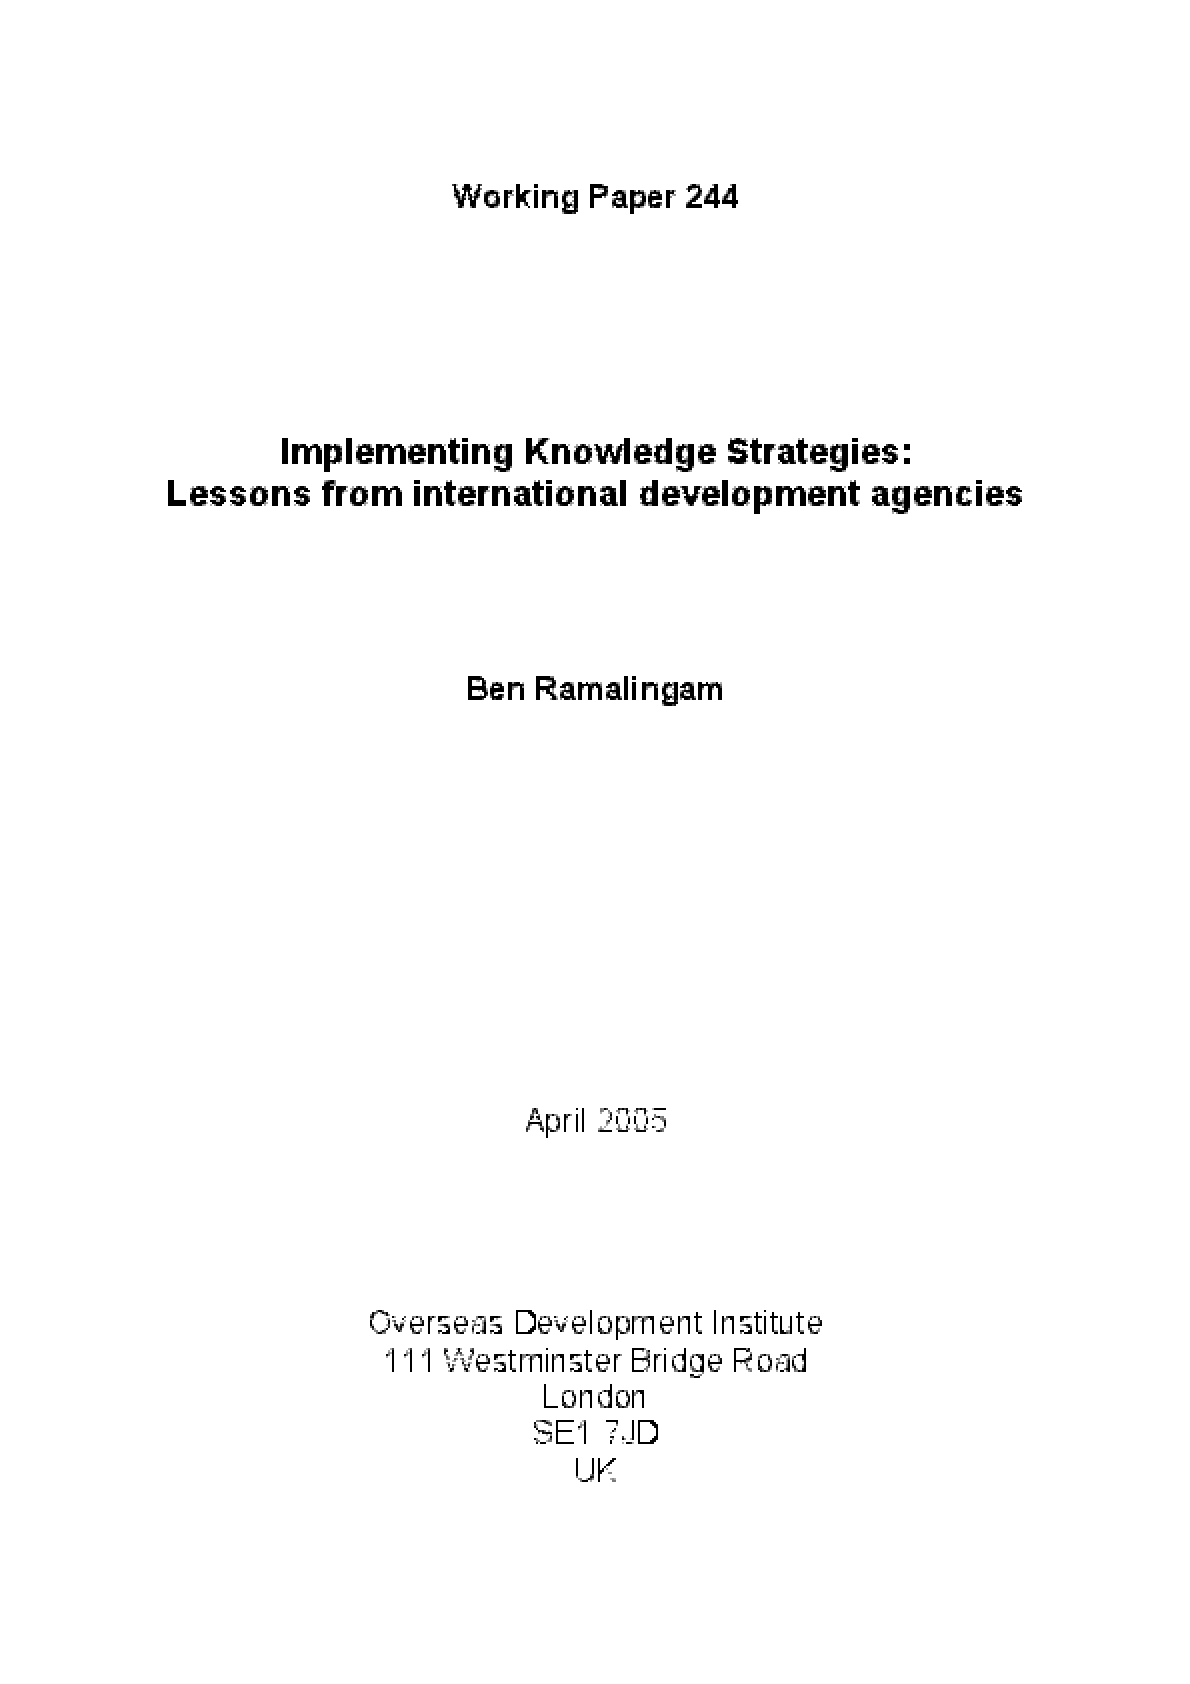 Implementing Knowledge Strategies: Lessons from International Development Agencies